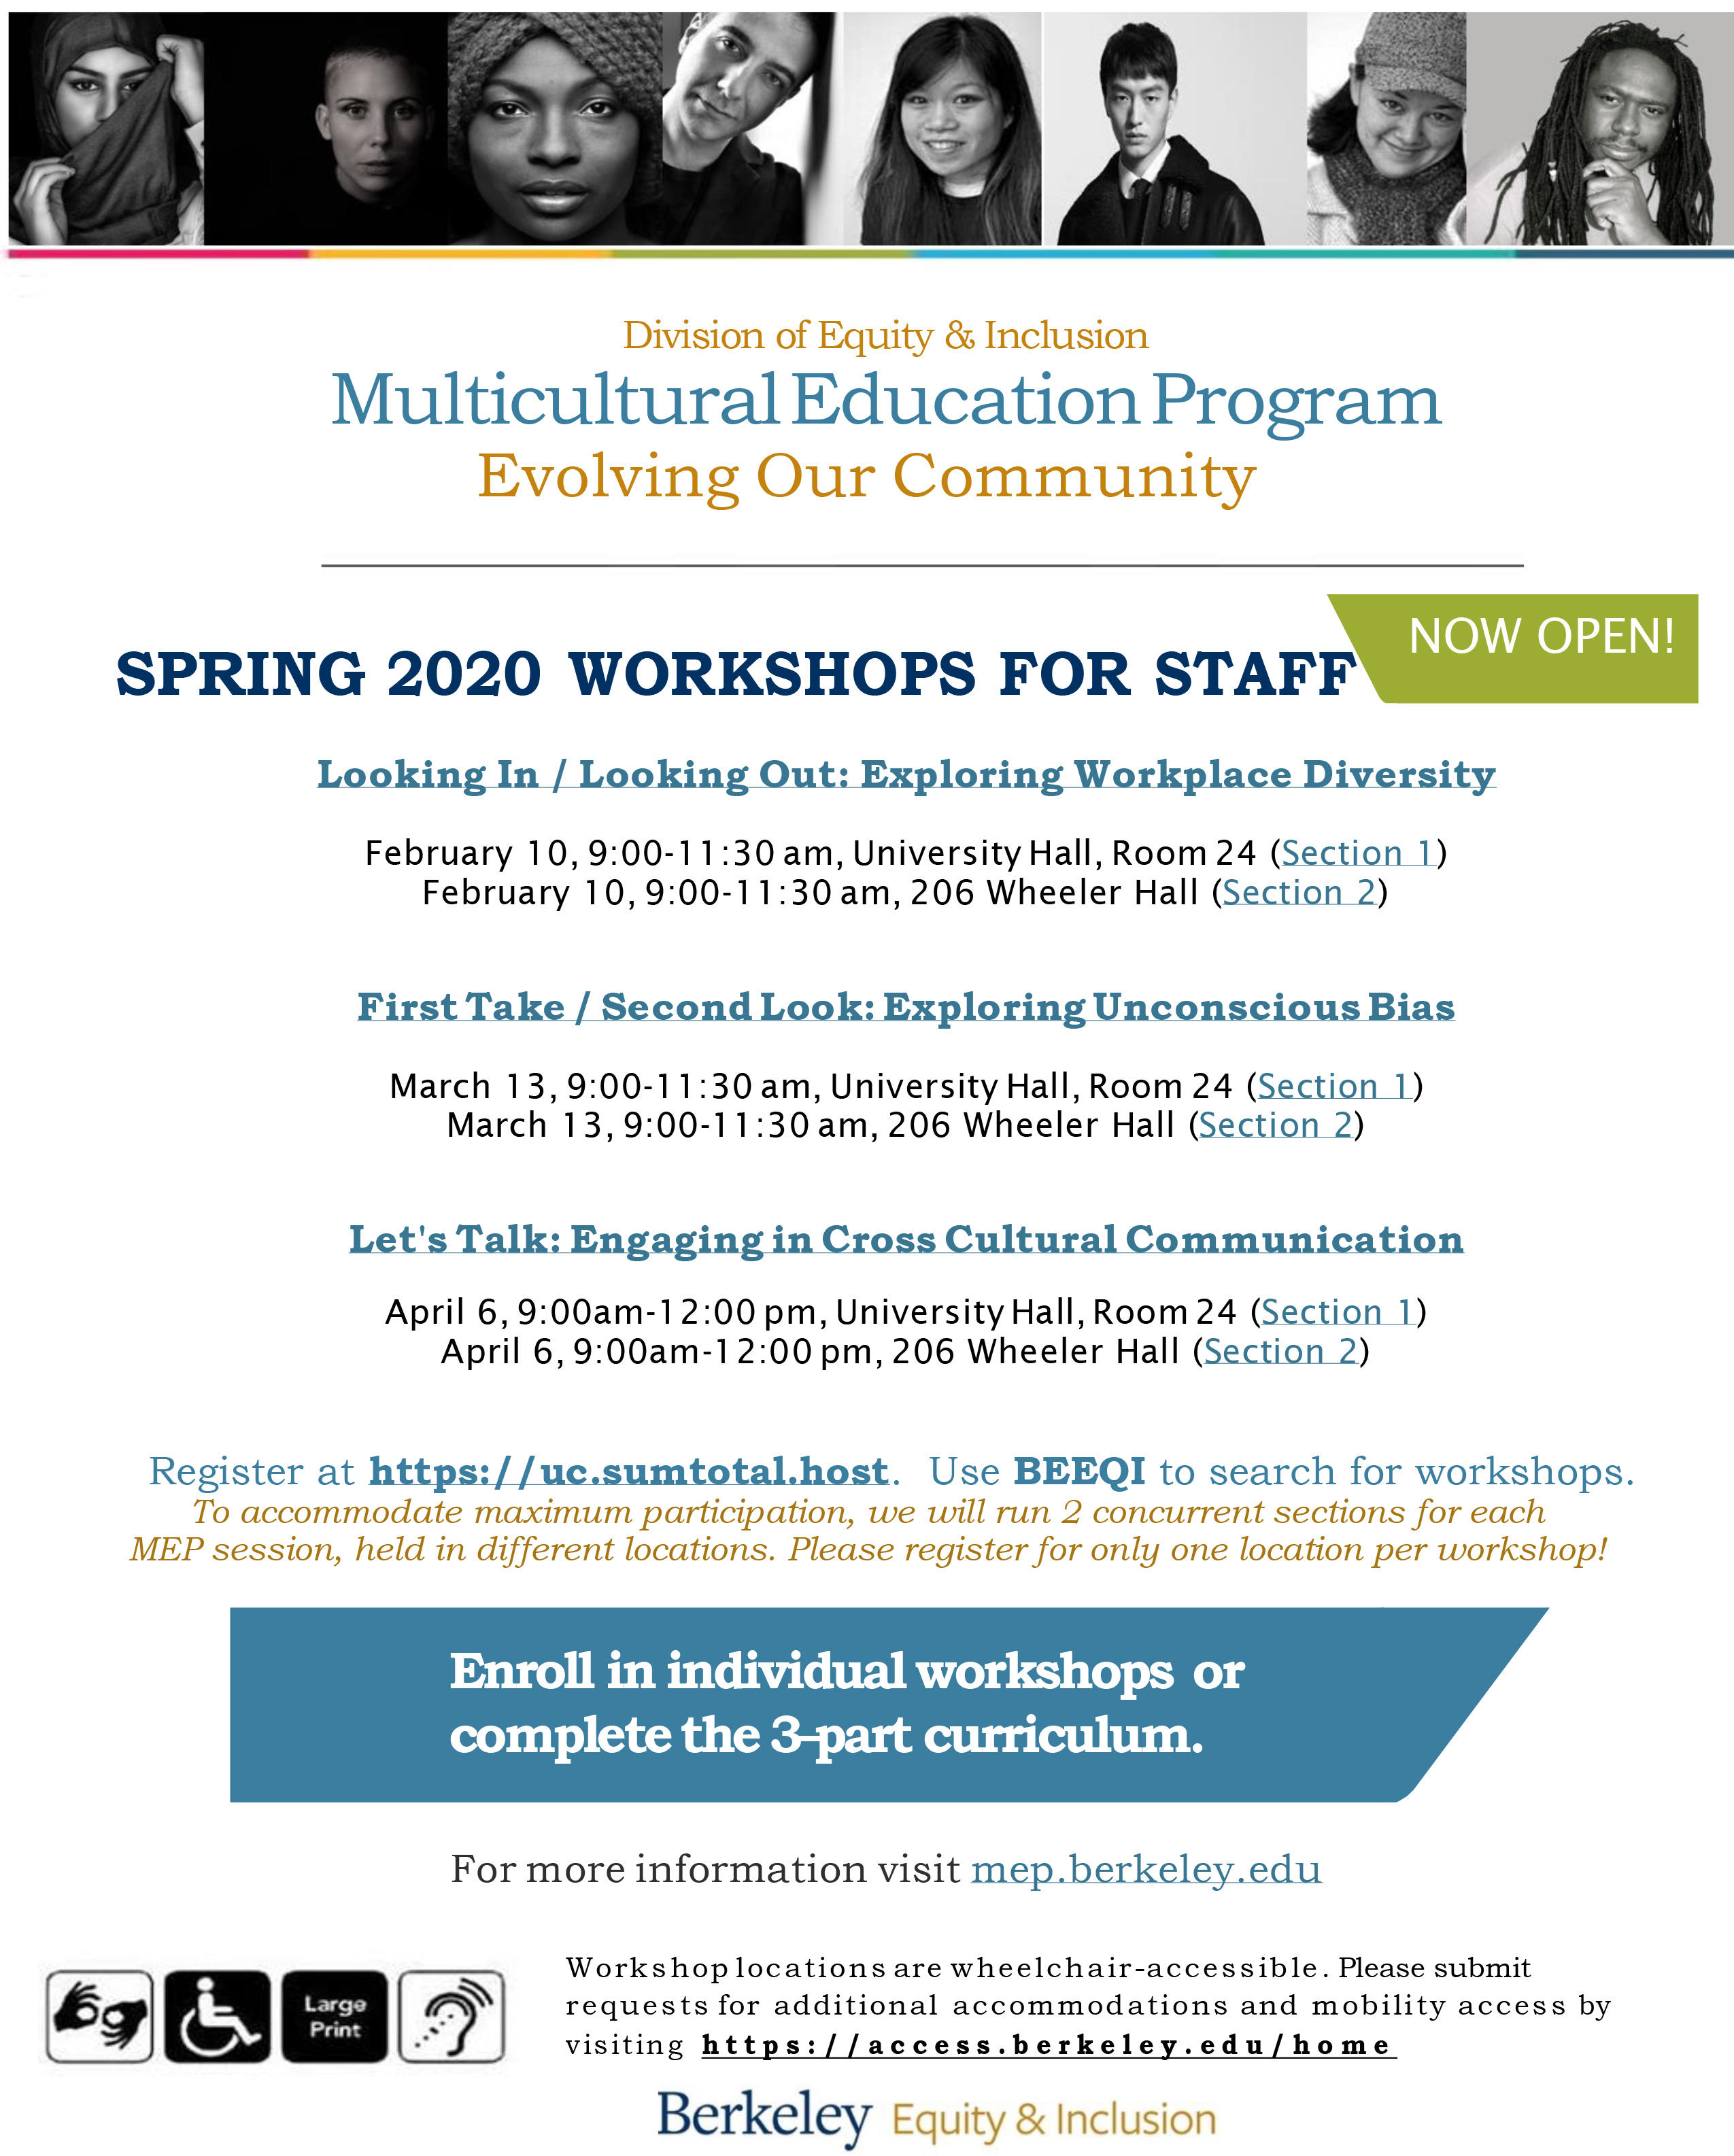 Multicultural Education Program - Spring 2020 workshops for UC Berkeley staff are open for enrollment. Take 1, 2, or all three parts.